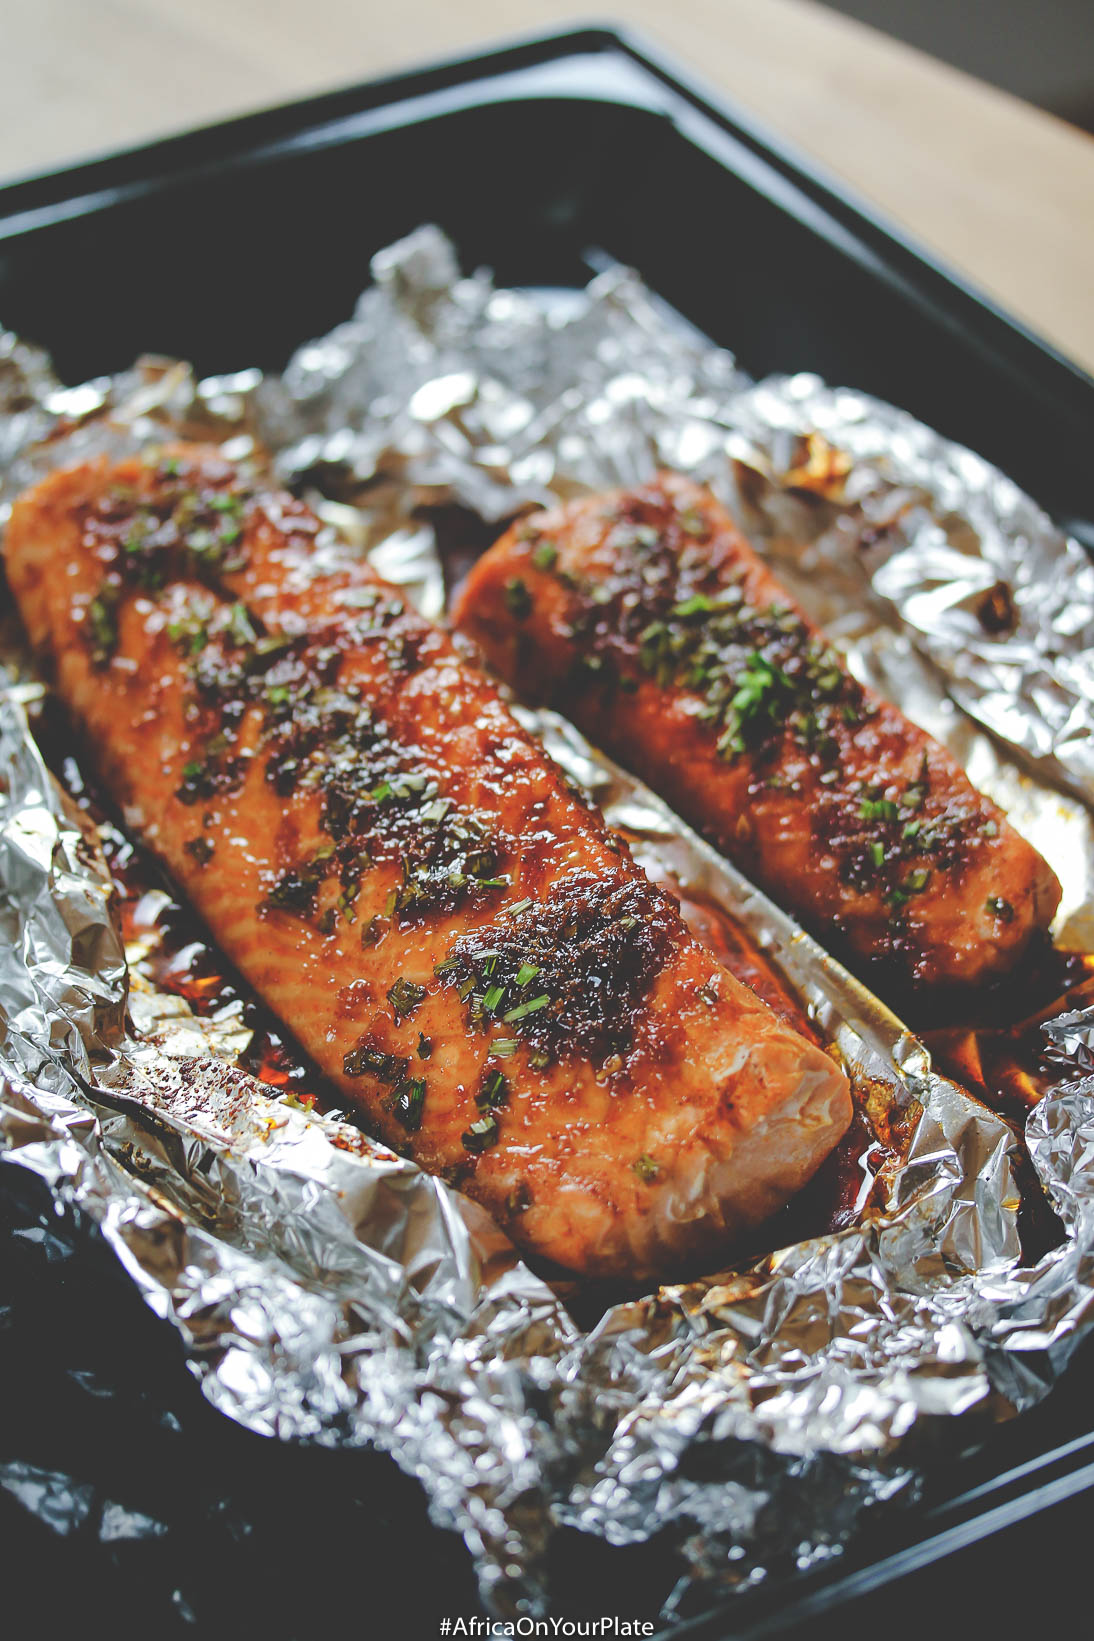 Baked Honey and Blond-Orange Glazed Salmon